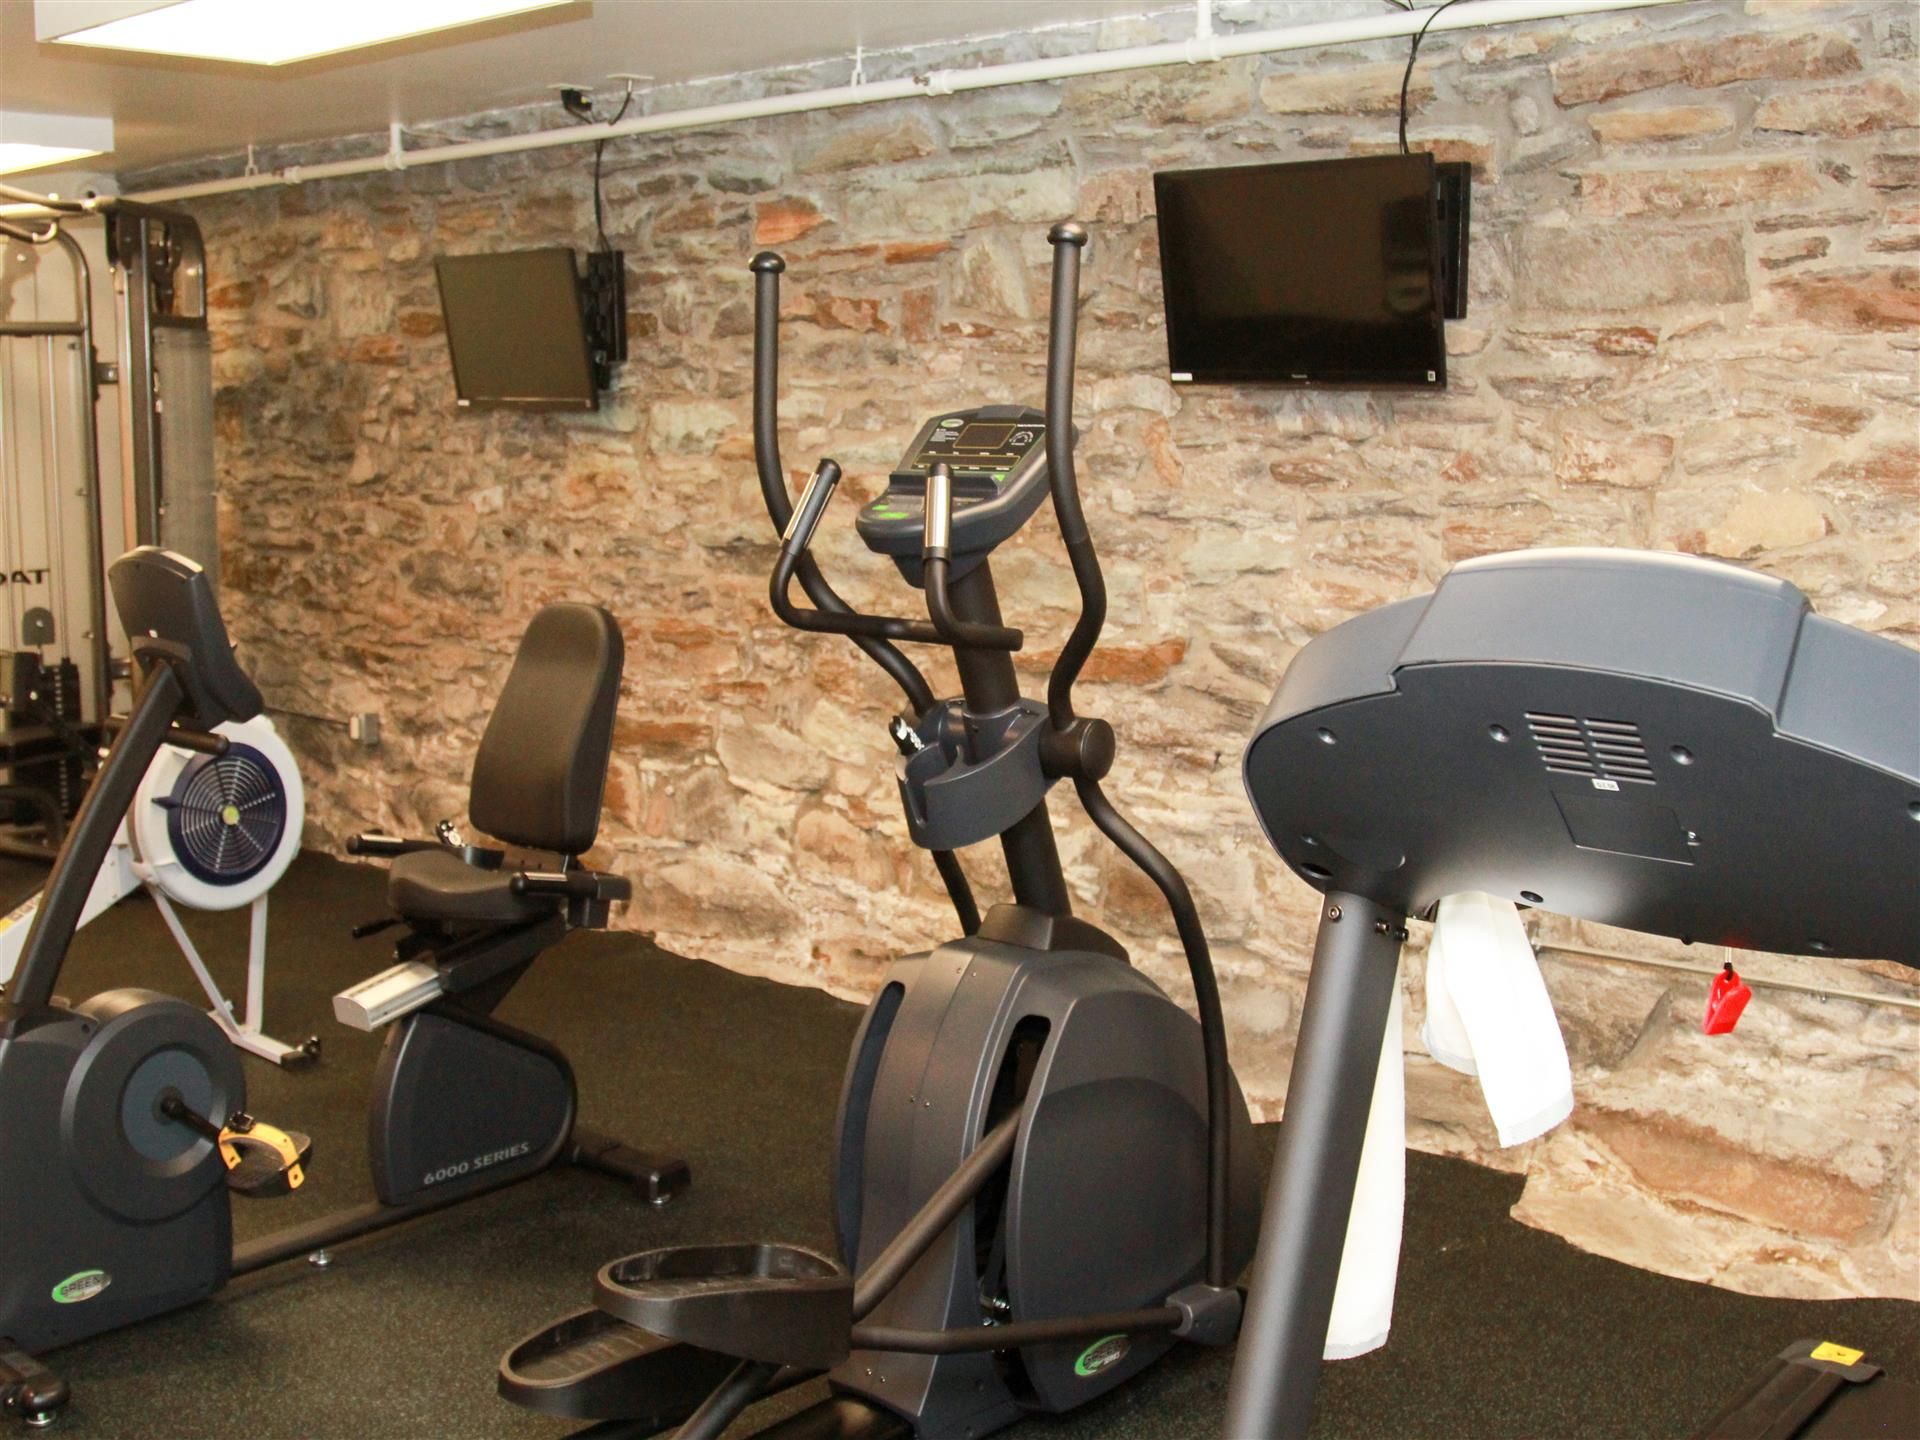 workout area with tvs and machines